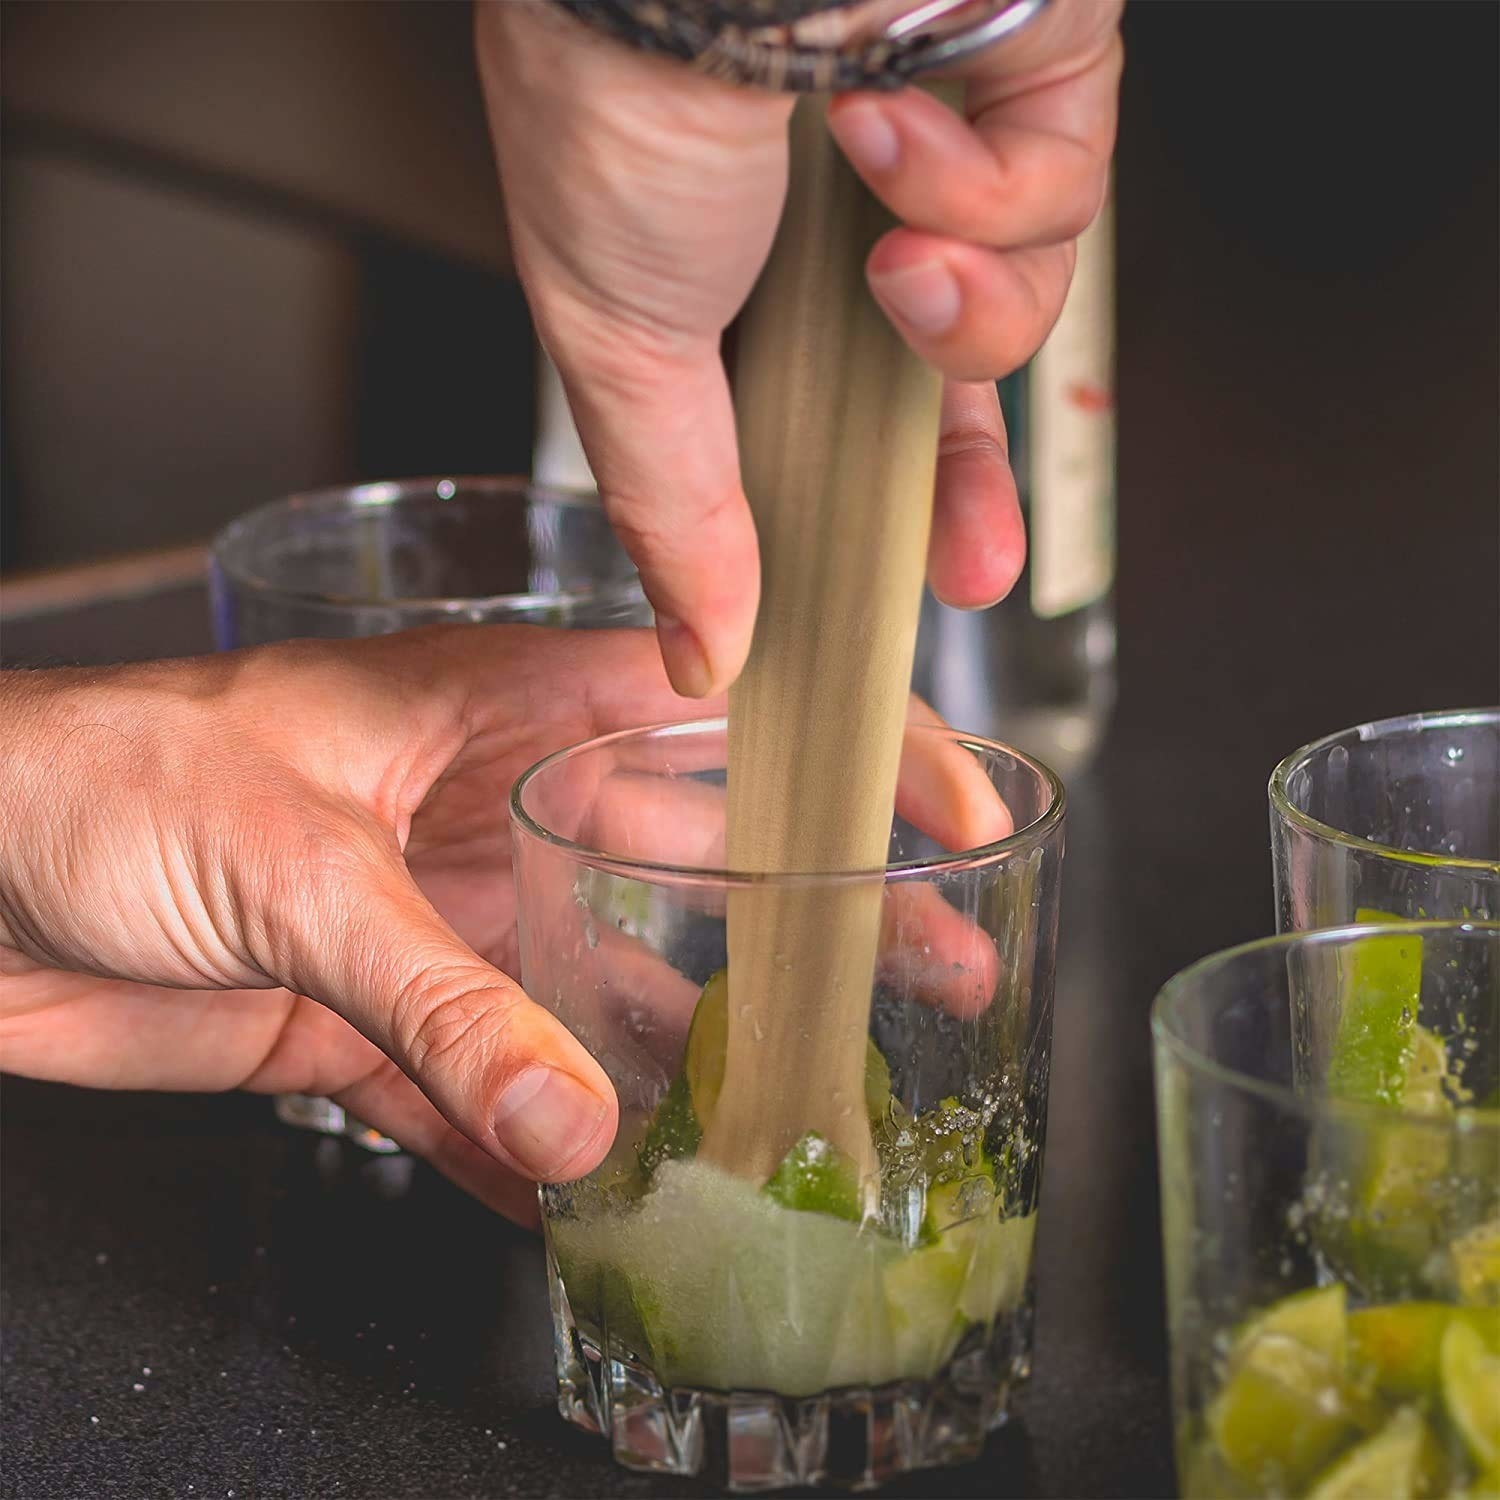 A person muddling mint, lemon, and sugar in a glass.